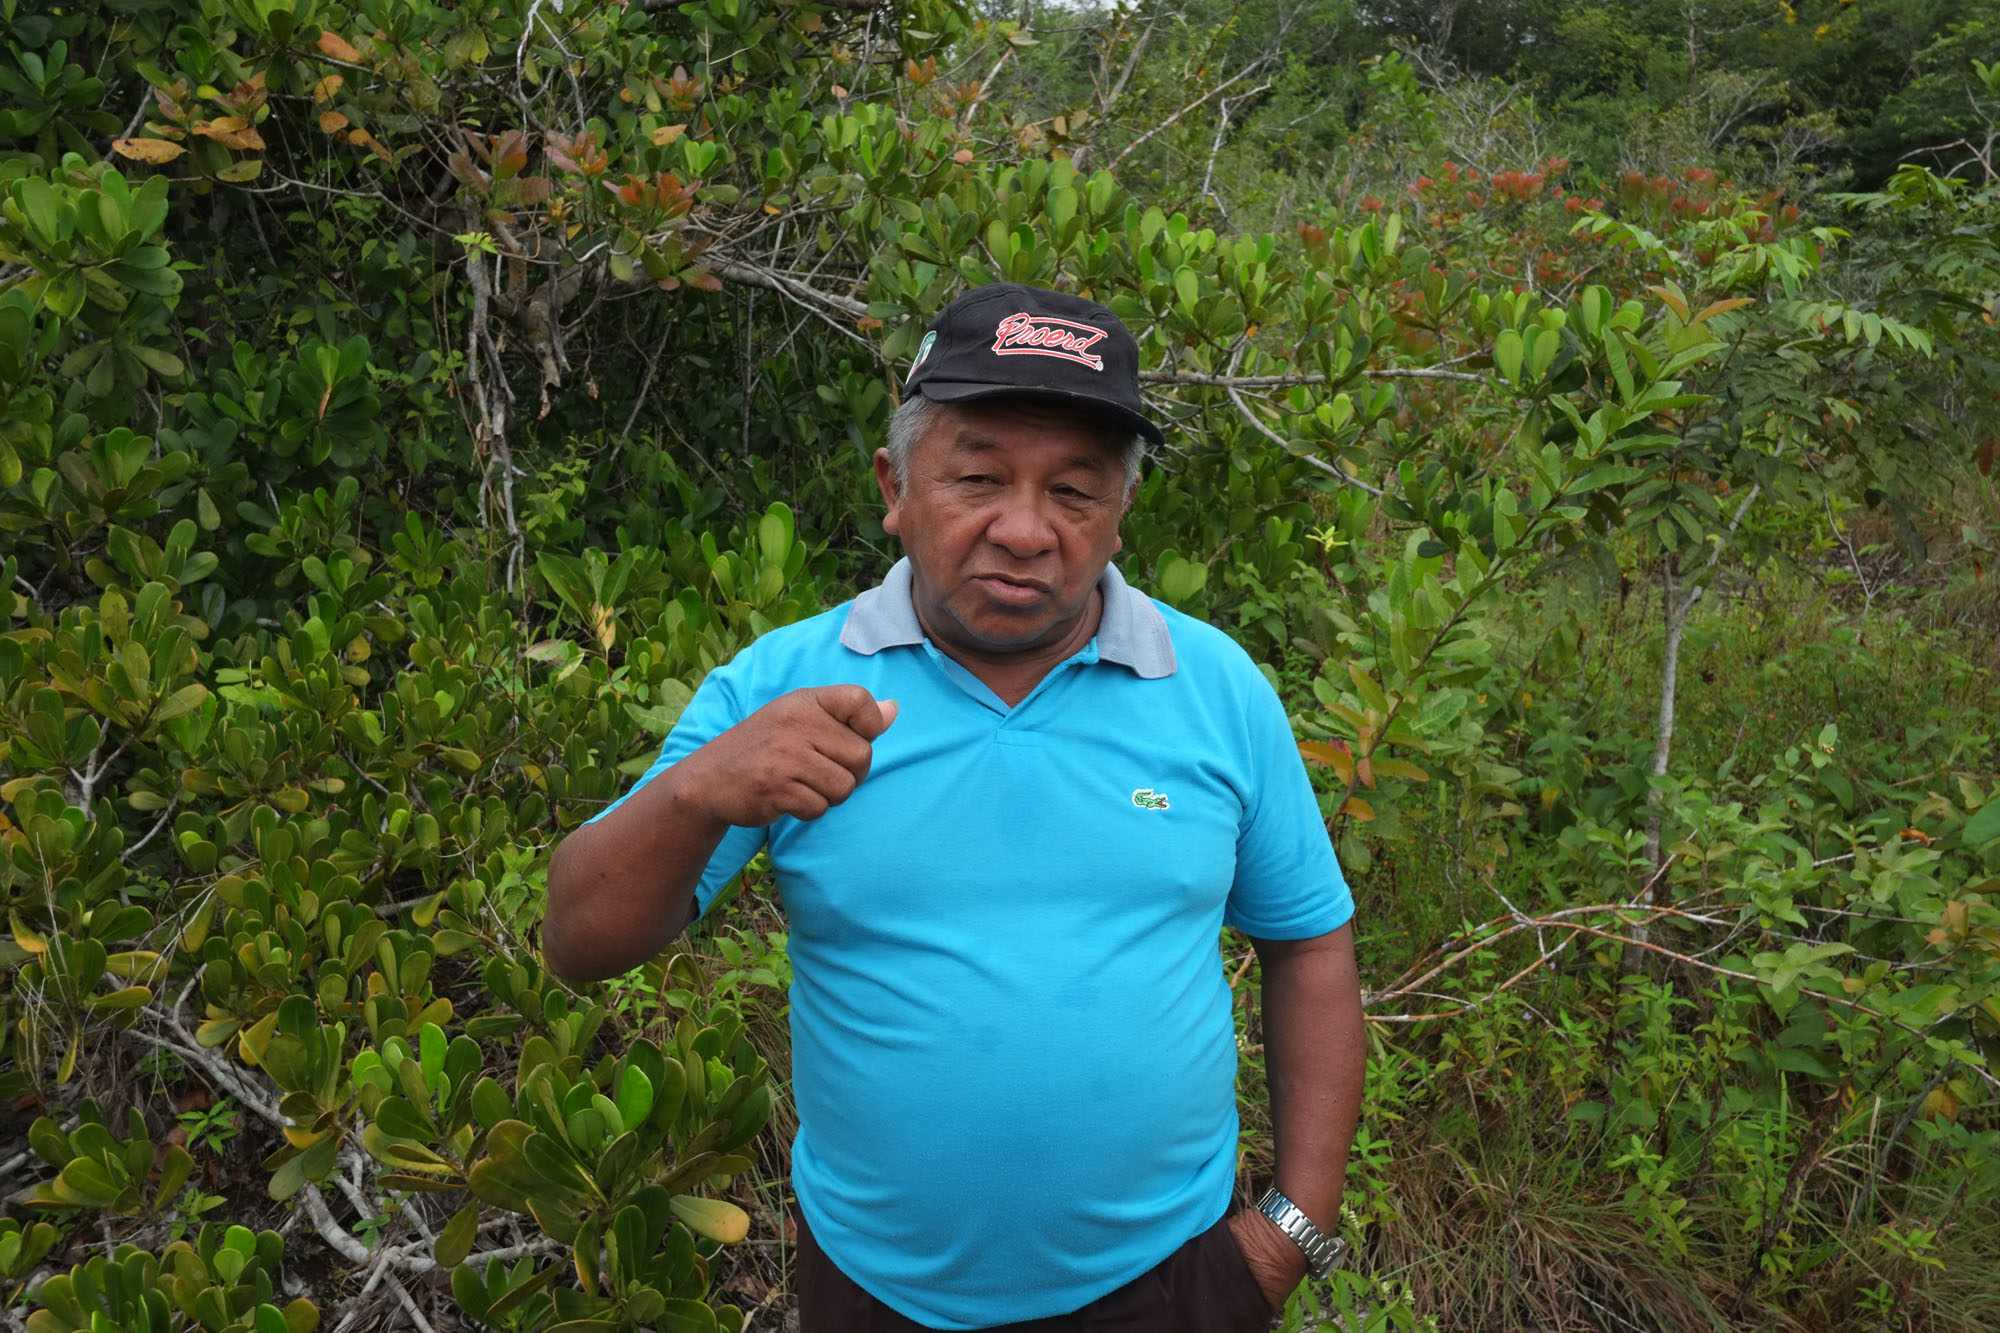 Amado Menezes stands in a forested area wearing a blue Lacoste polo shirt and a baseball cap.